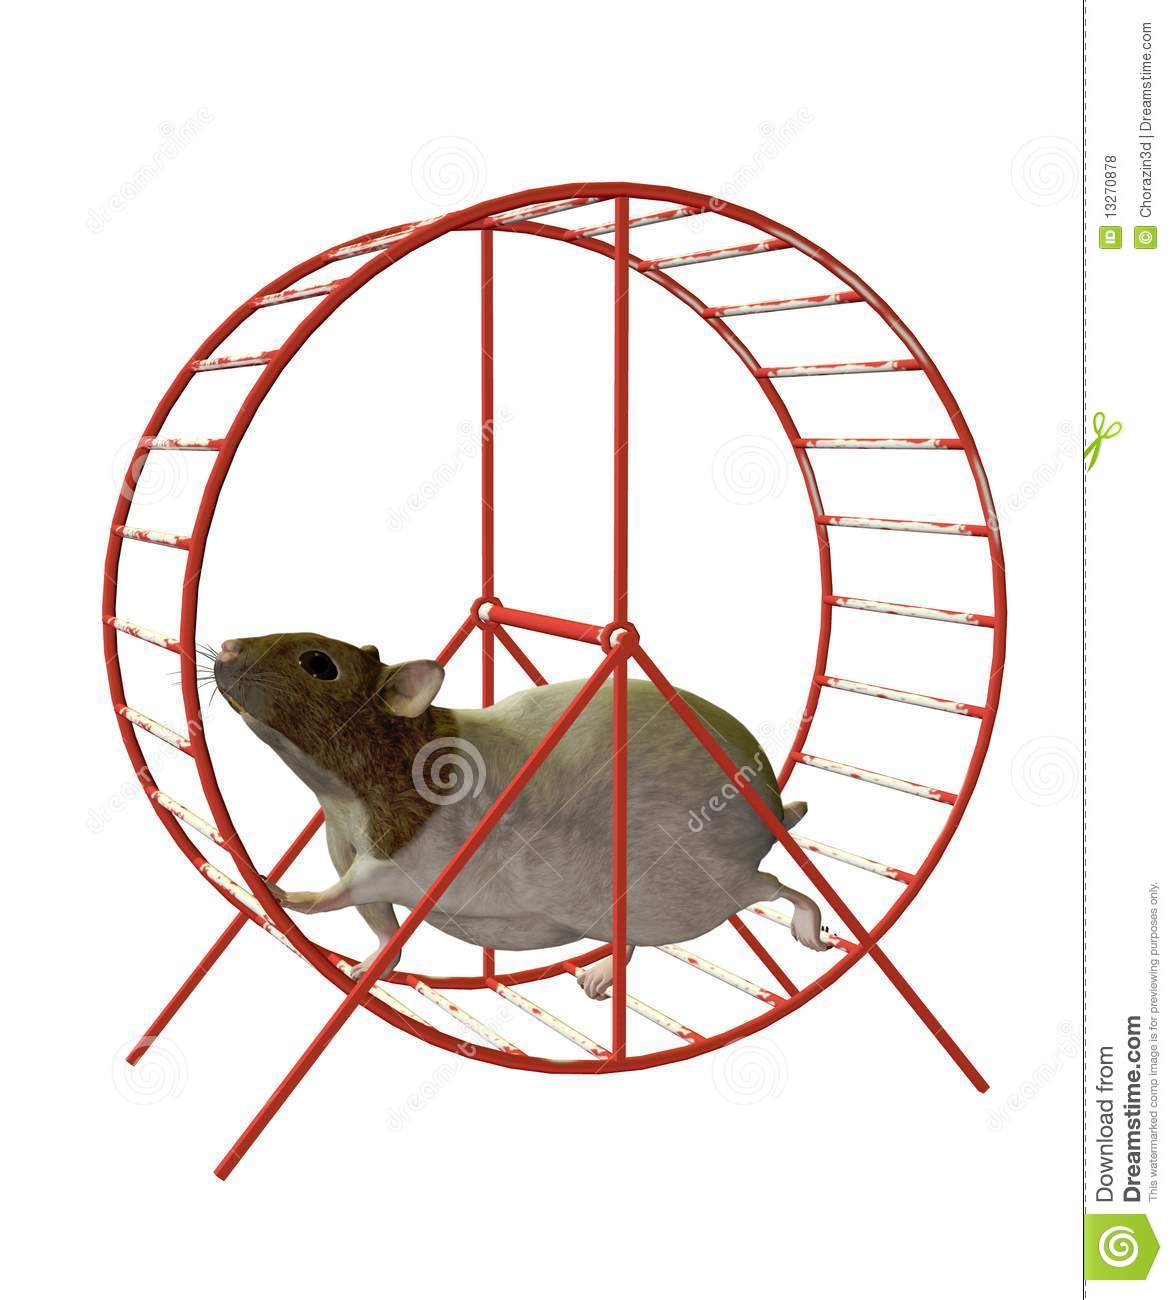 3d Frog Wallpaper Hamster On A Wheel Royalty Free Stock Photos Image 13270878